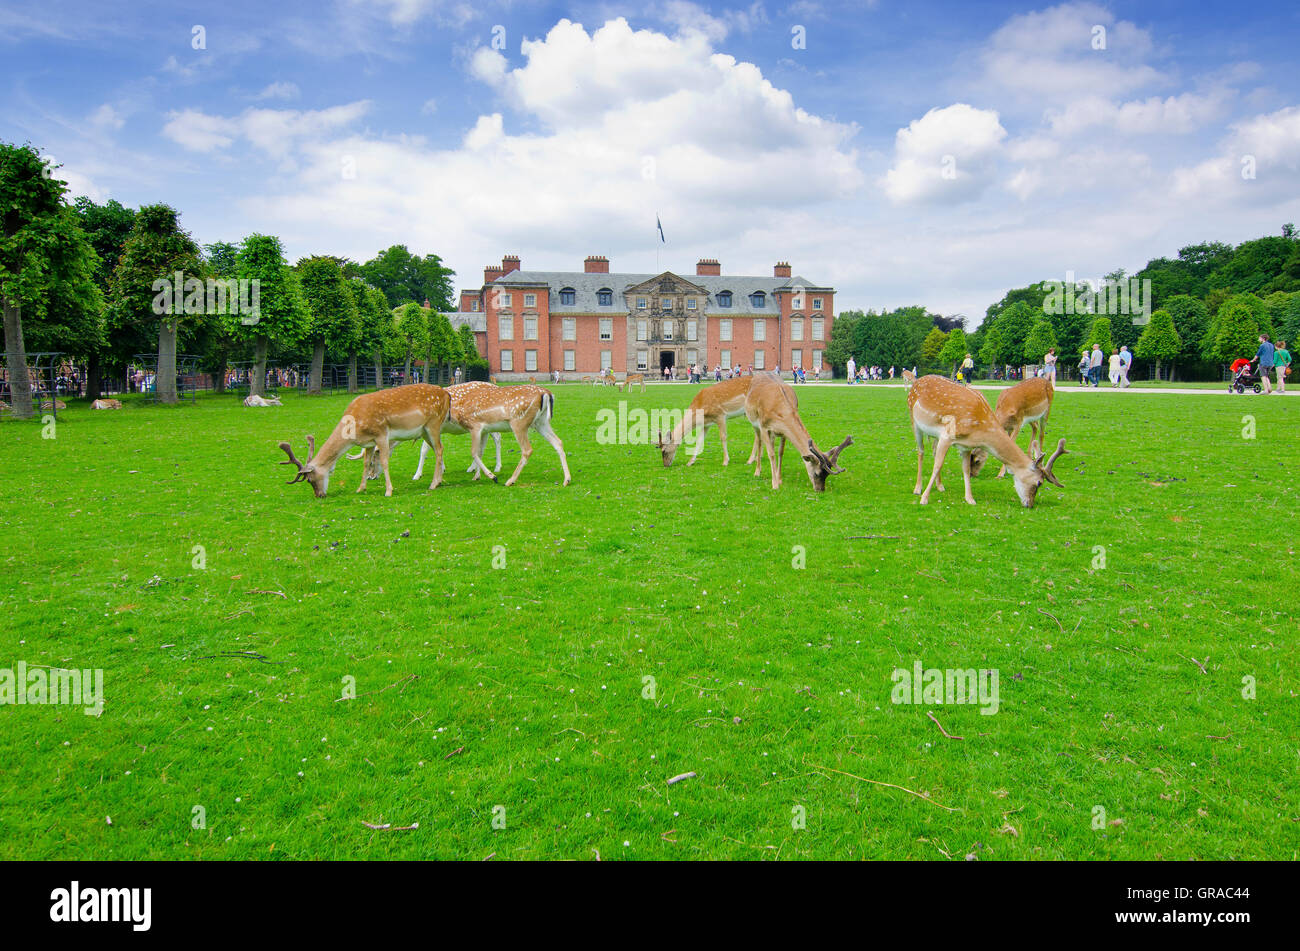 Dunham Massey Park,  formerly the home of the last Earl of Stamford and owned by the National Trust since 1976 - Stock Image